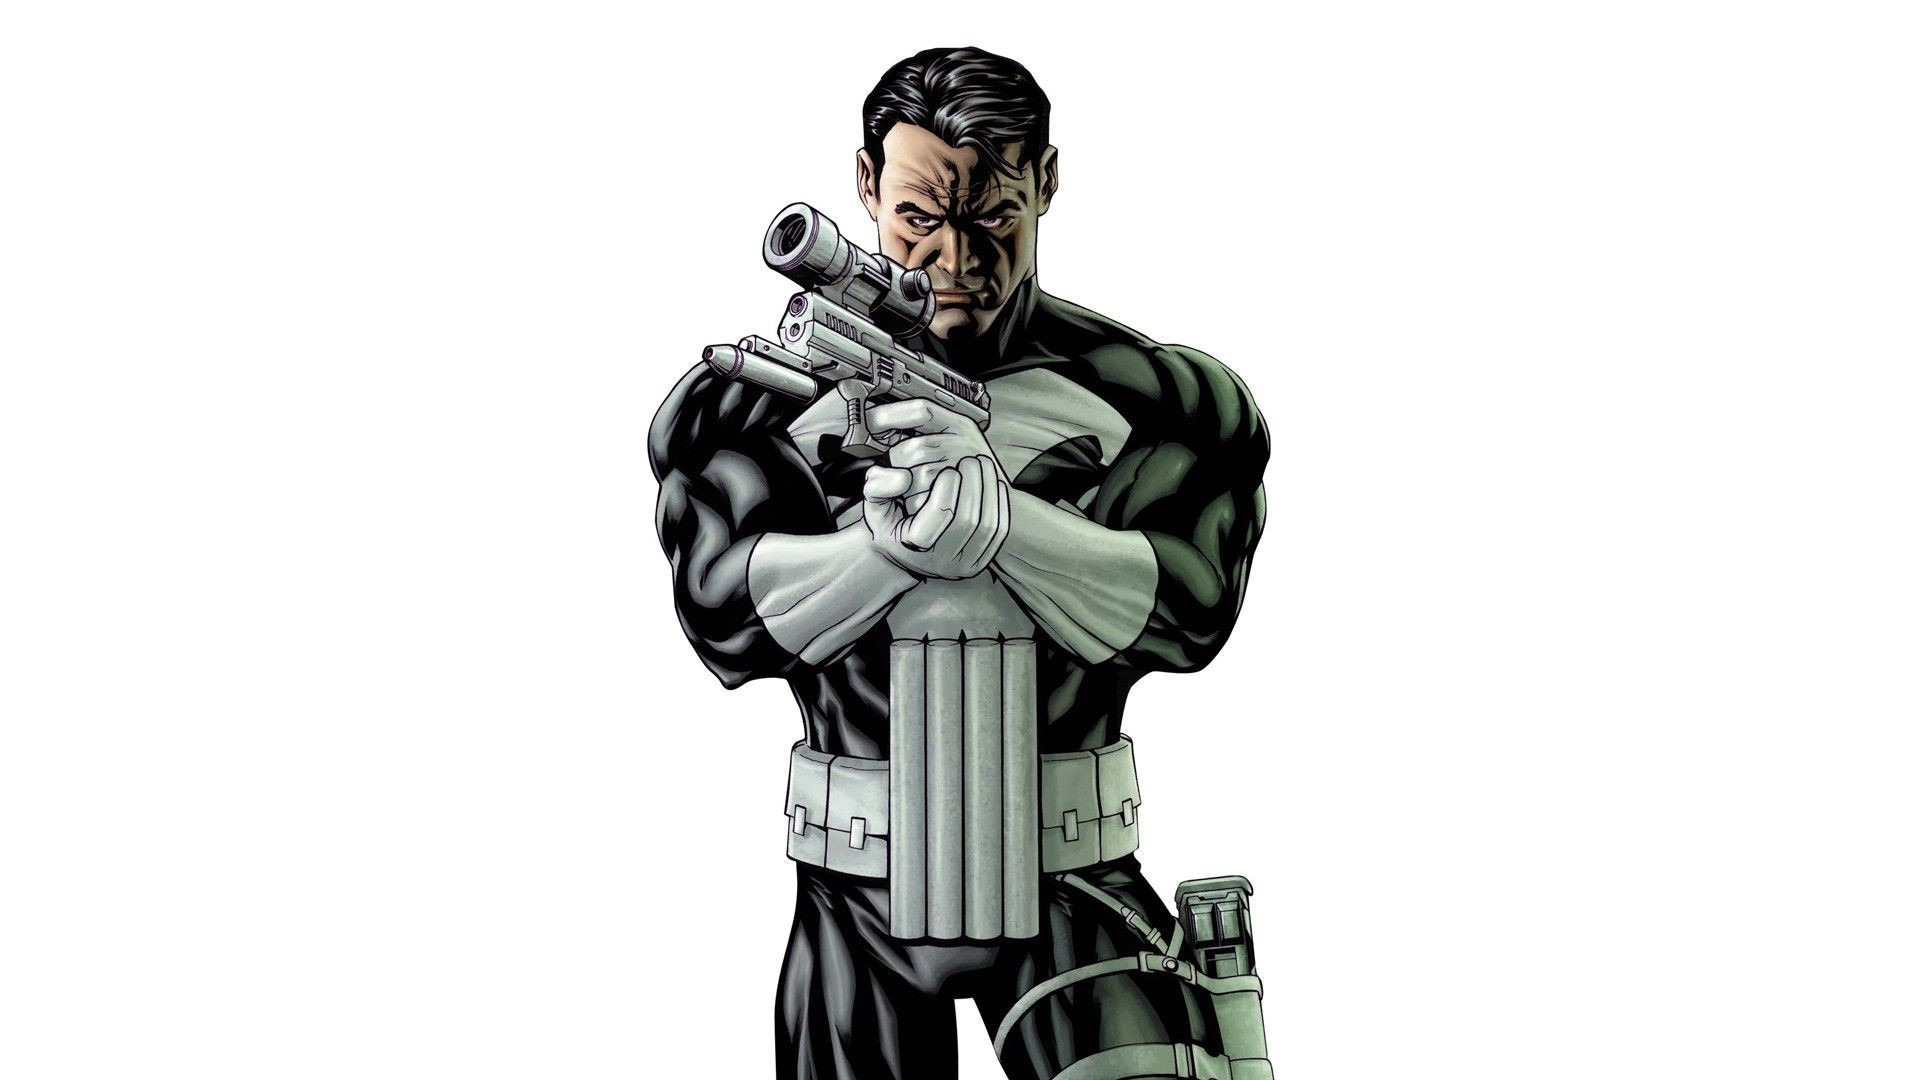 Punisher Phone Wallpaper (70+ images)